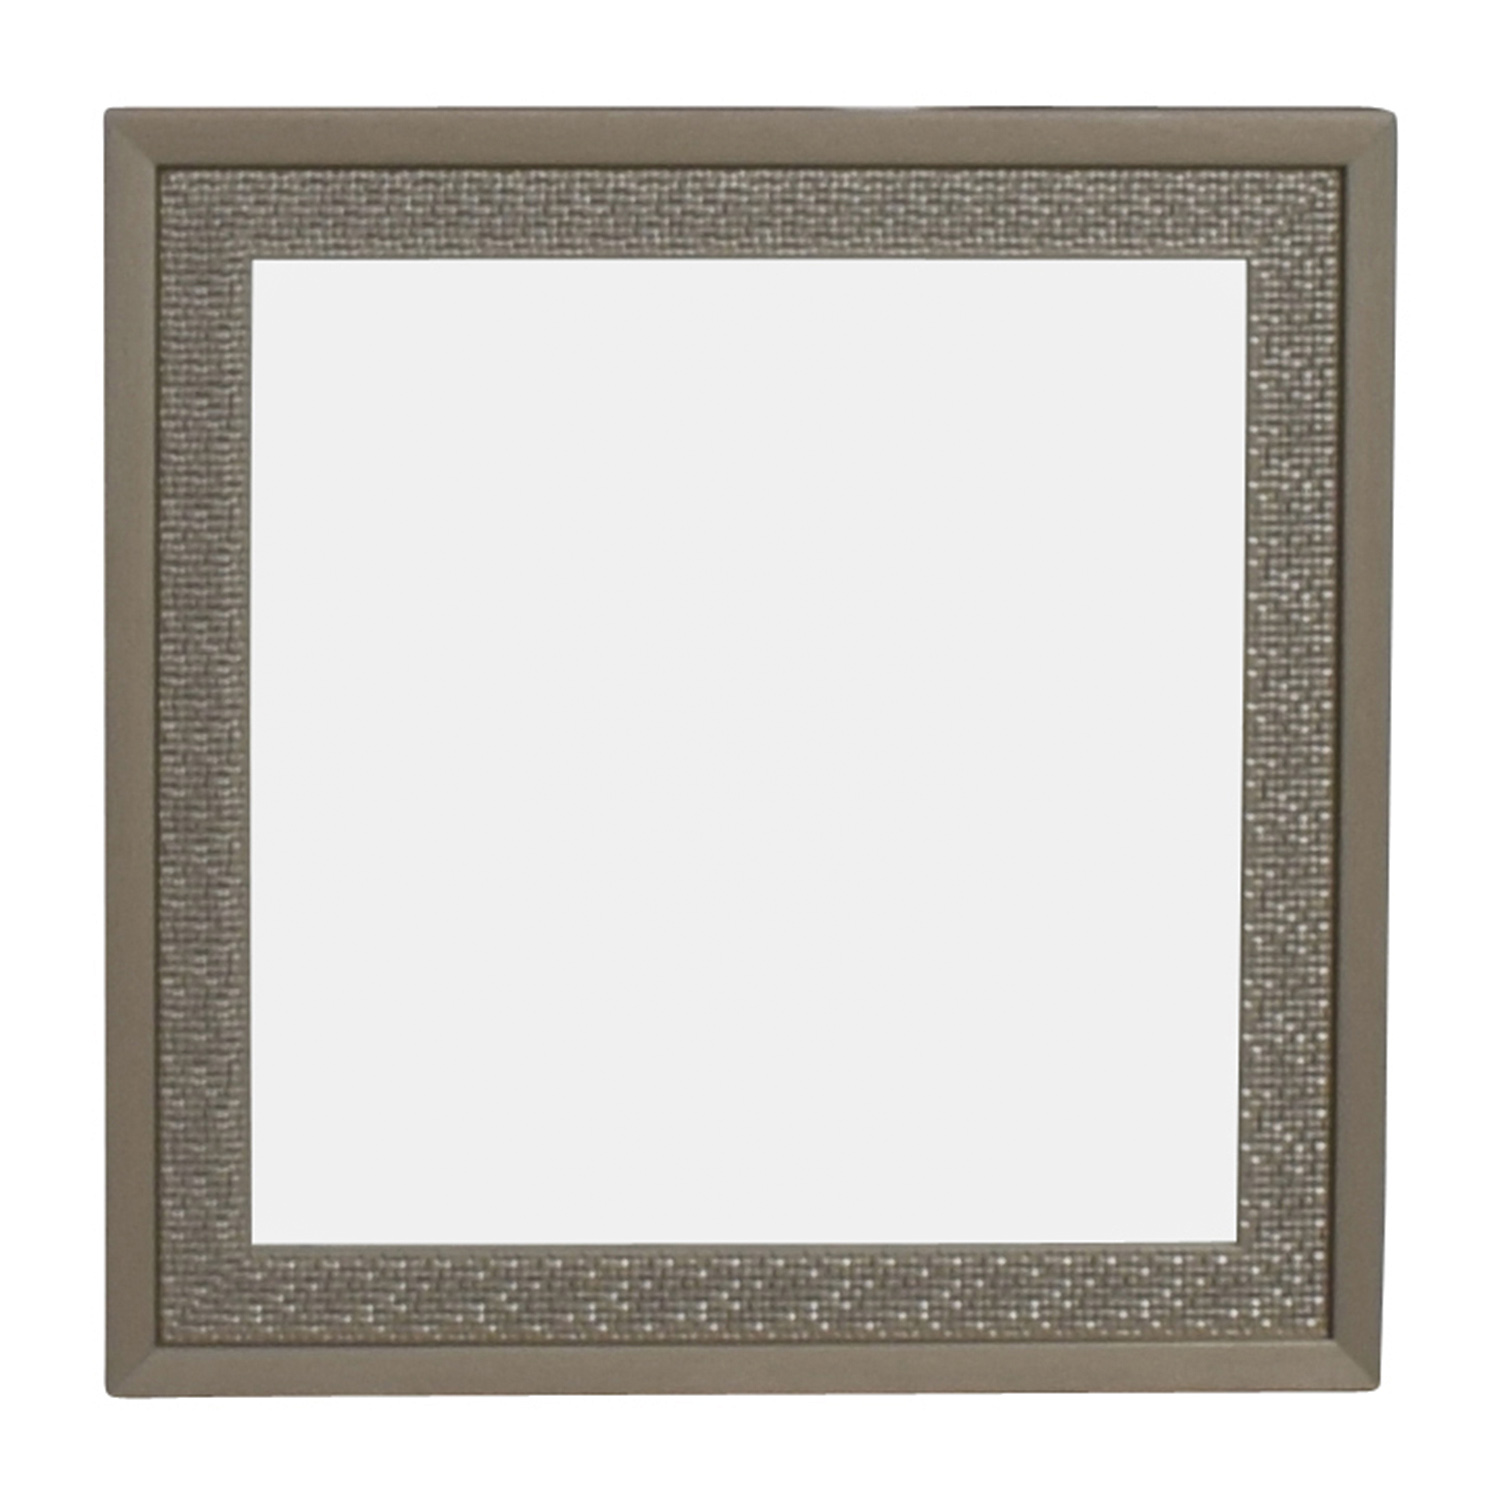 Target Target Decorative Silver Mirror dimensions